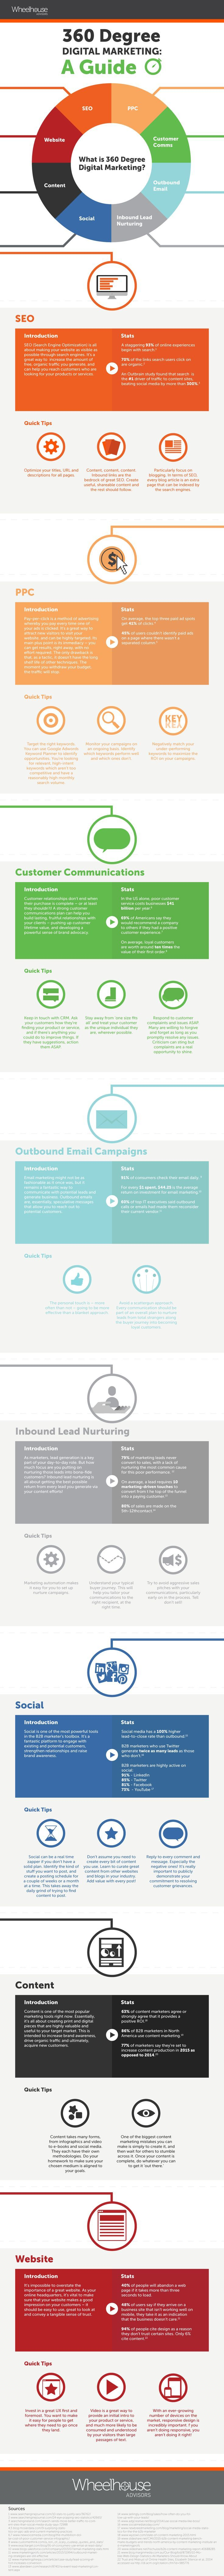 Developing A 360-Degree Digital Marketing Strategy - infographic | While check…